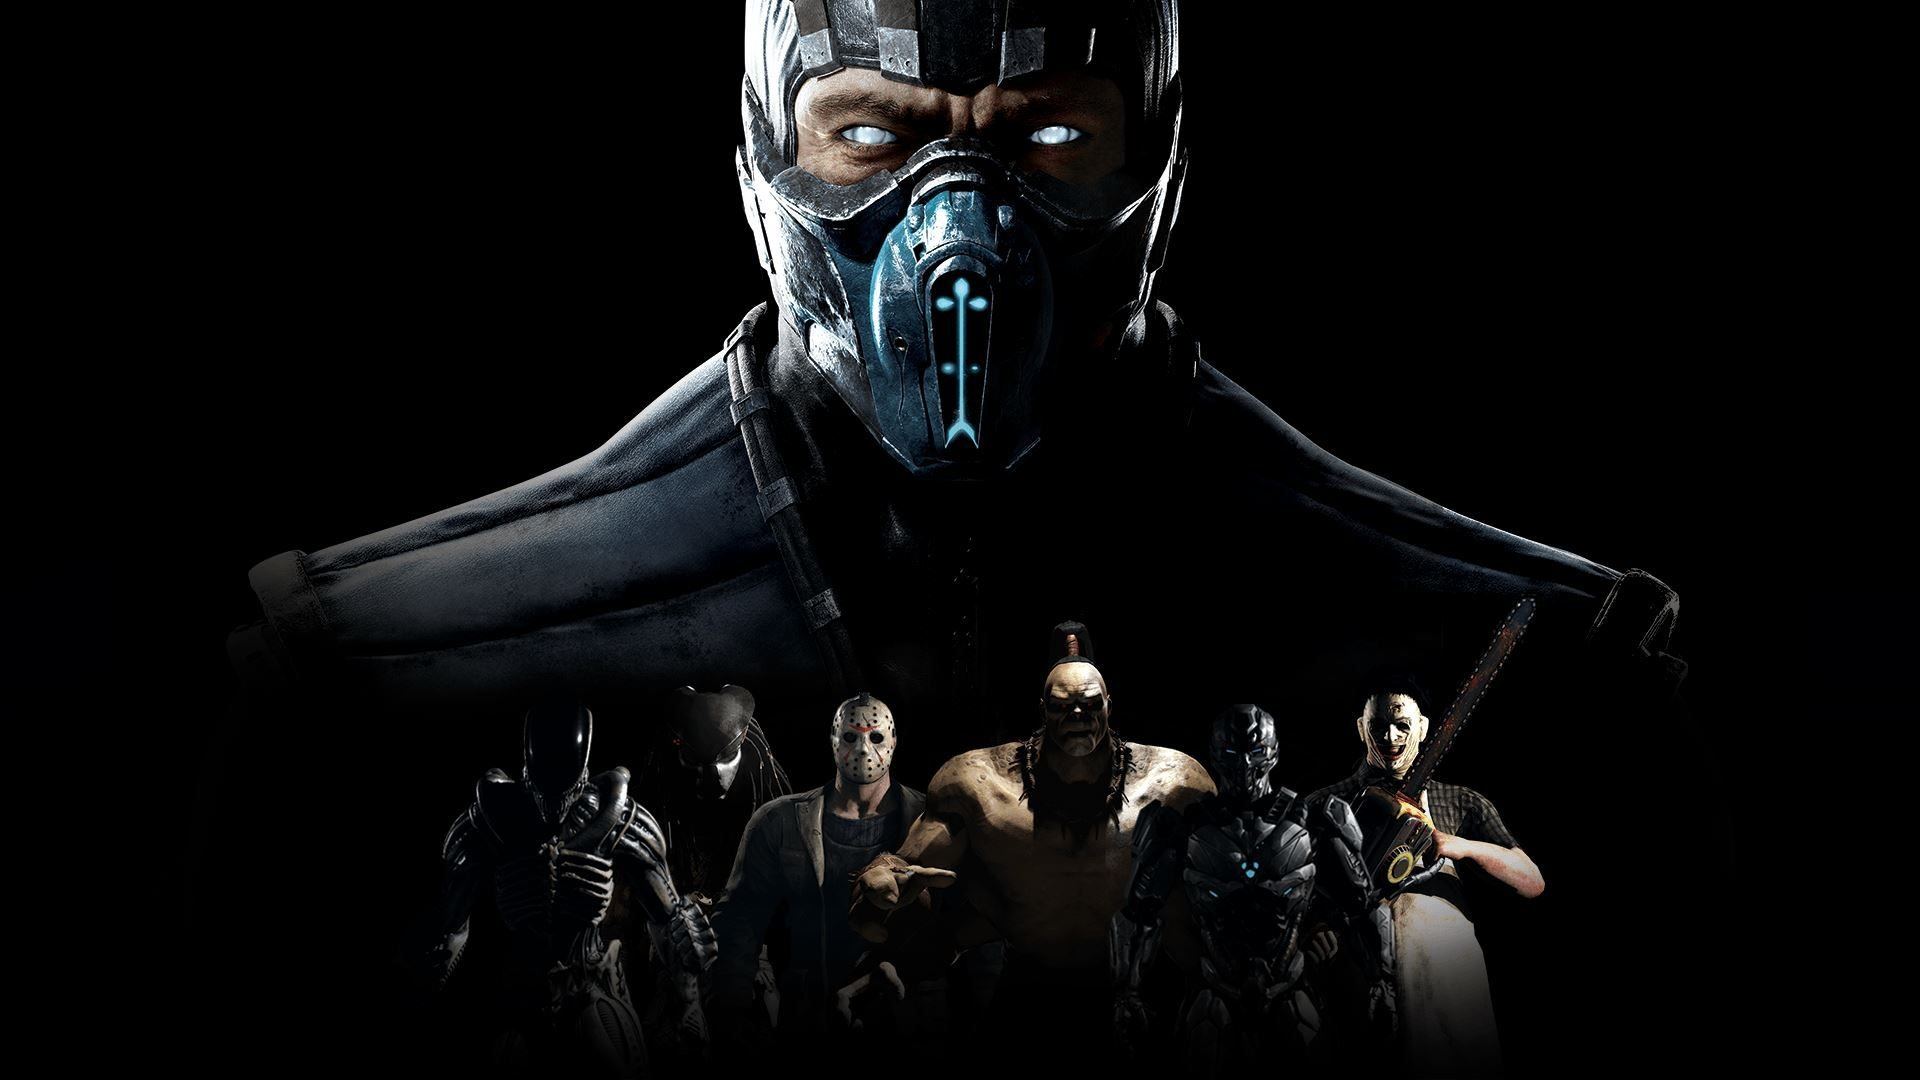 Mortal Kombat Xl Wallpapers Top Free Mortal Kombat Xl